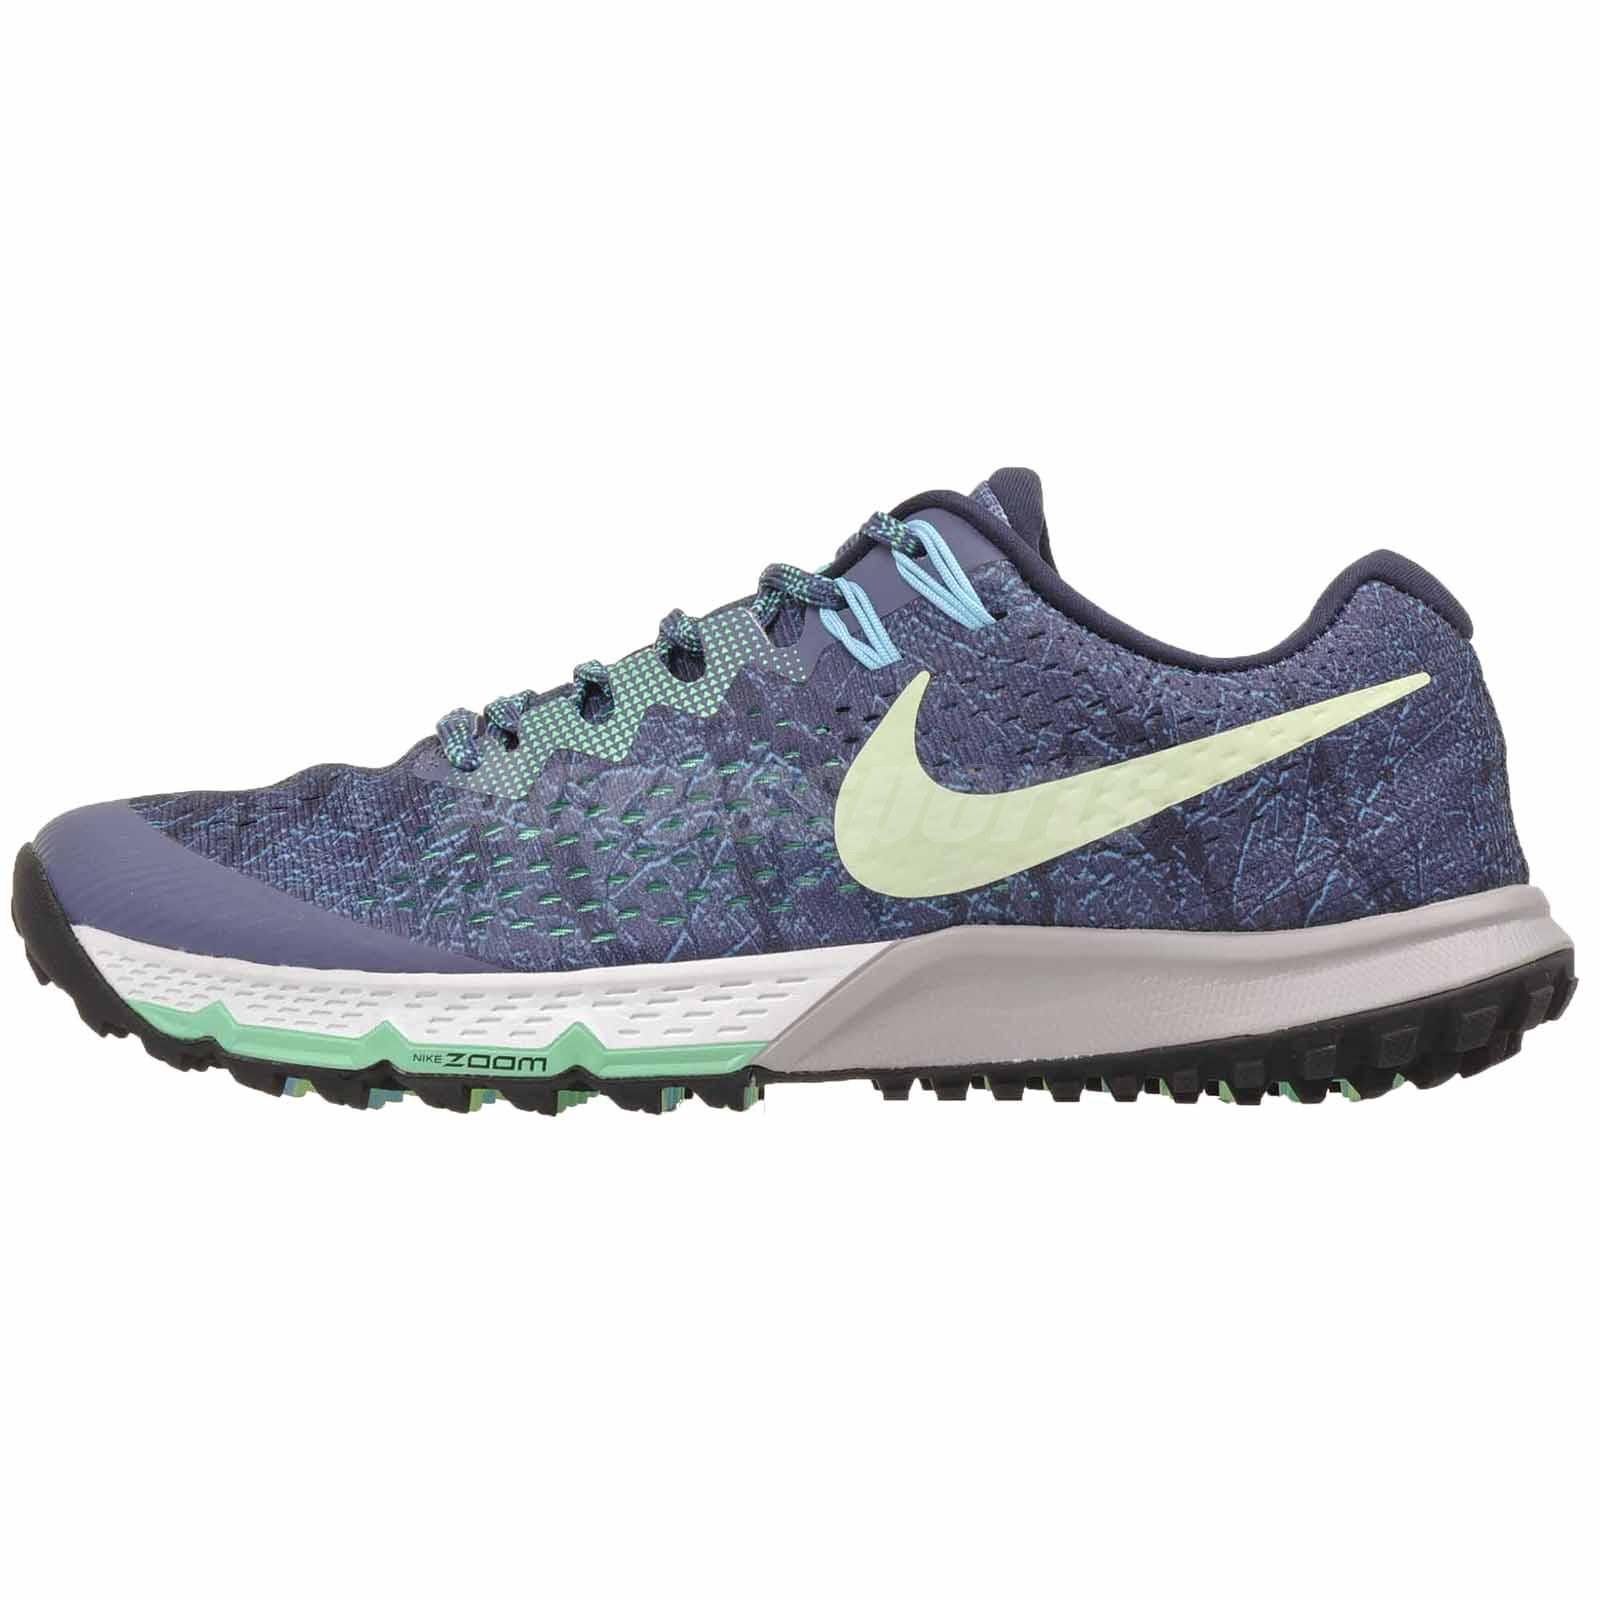 new style 2726e ef09f Details about Nike W Air Zoom Terra Kiger 4 Cross Training Womens Shoes  Blue 880564-400